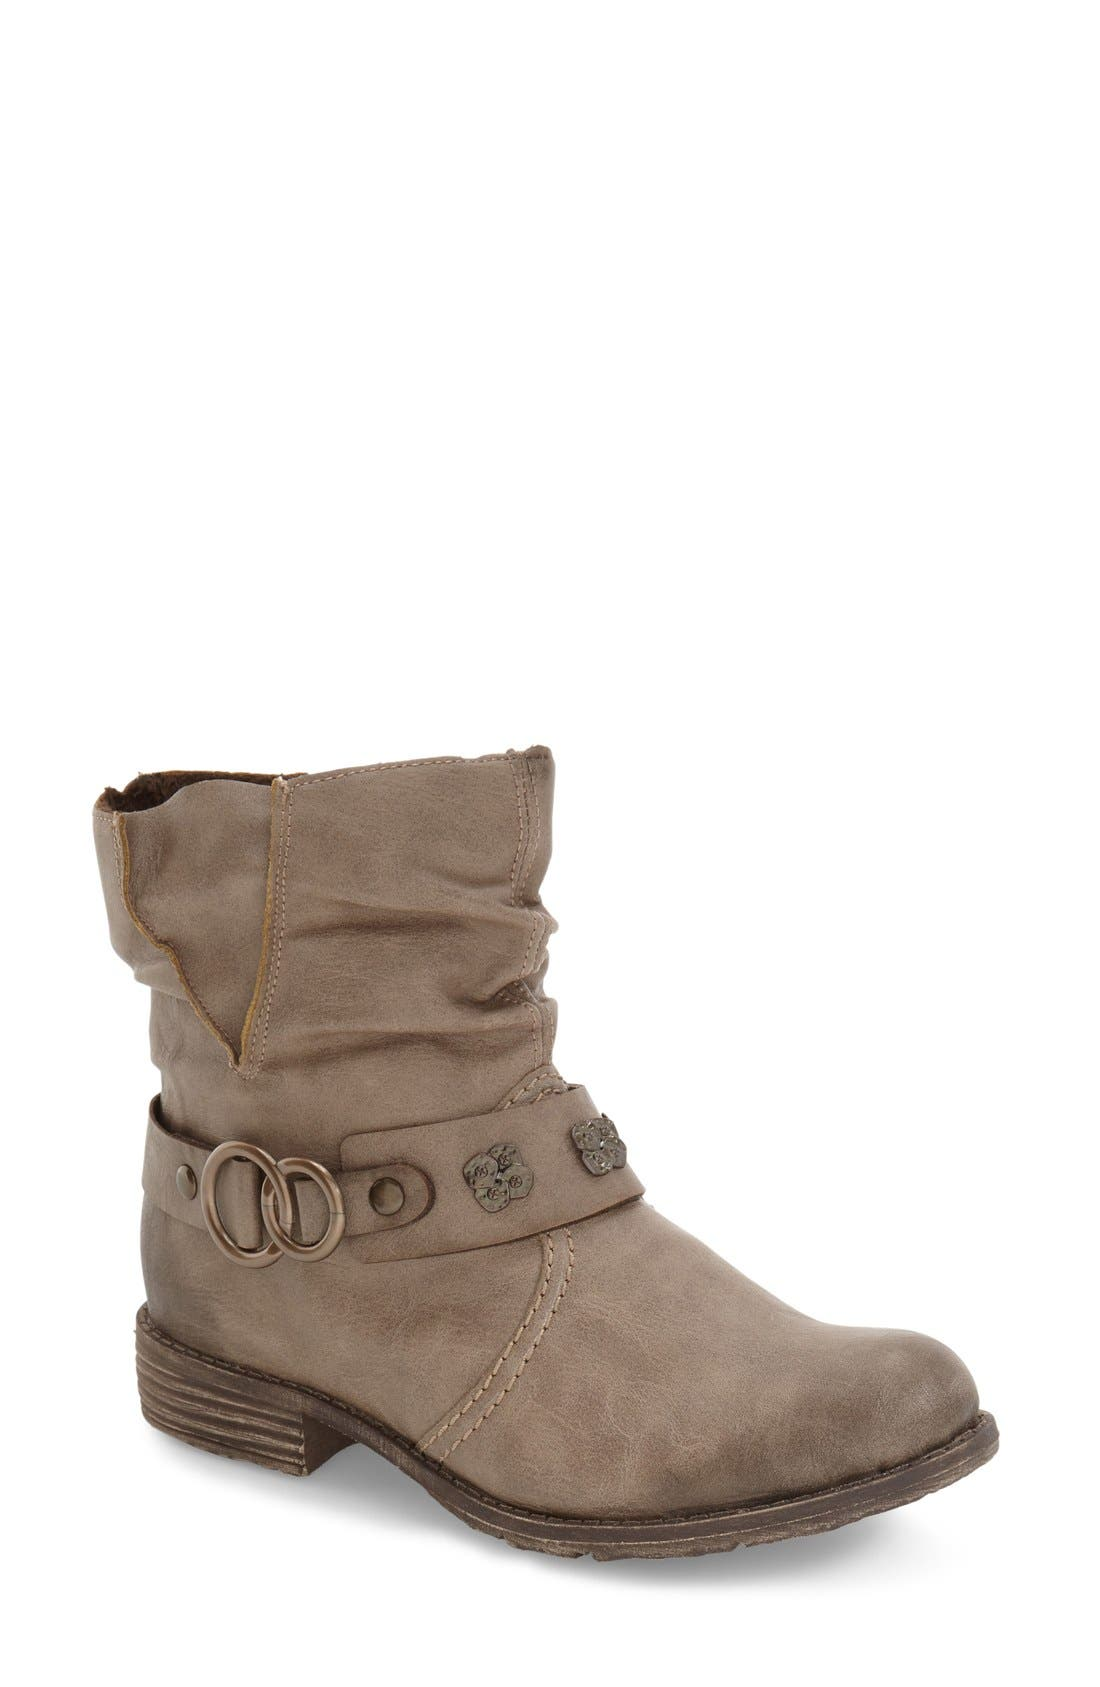 Alternate Image 1 Selected - Rieker Antistress 'Peggy' Boot (Women)